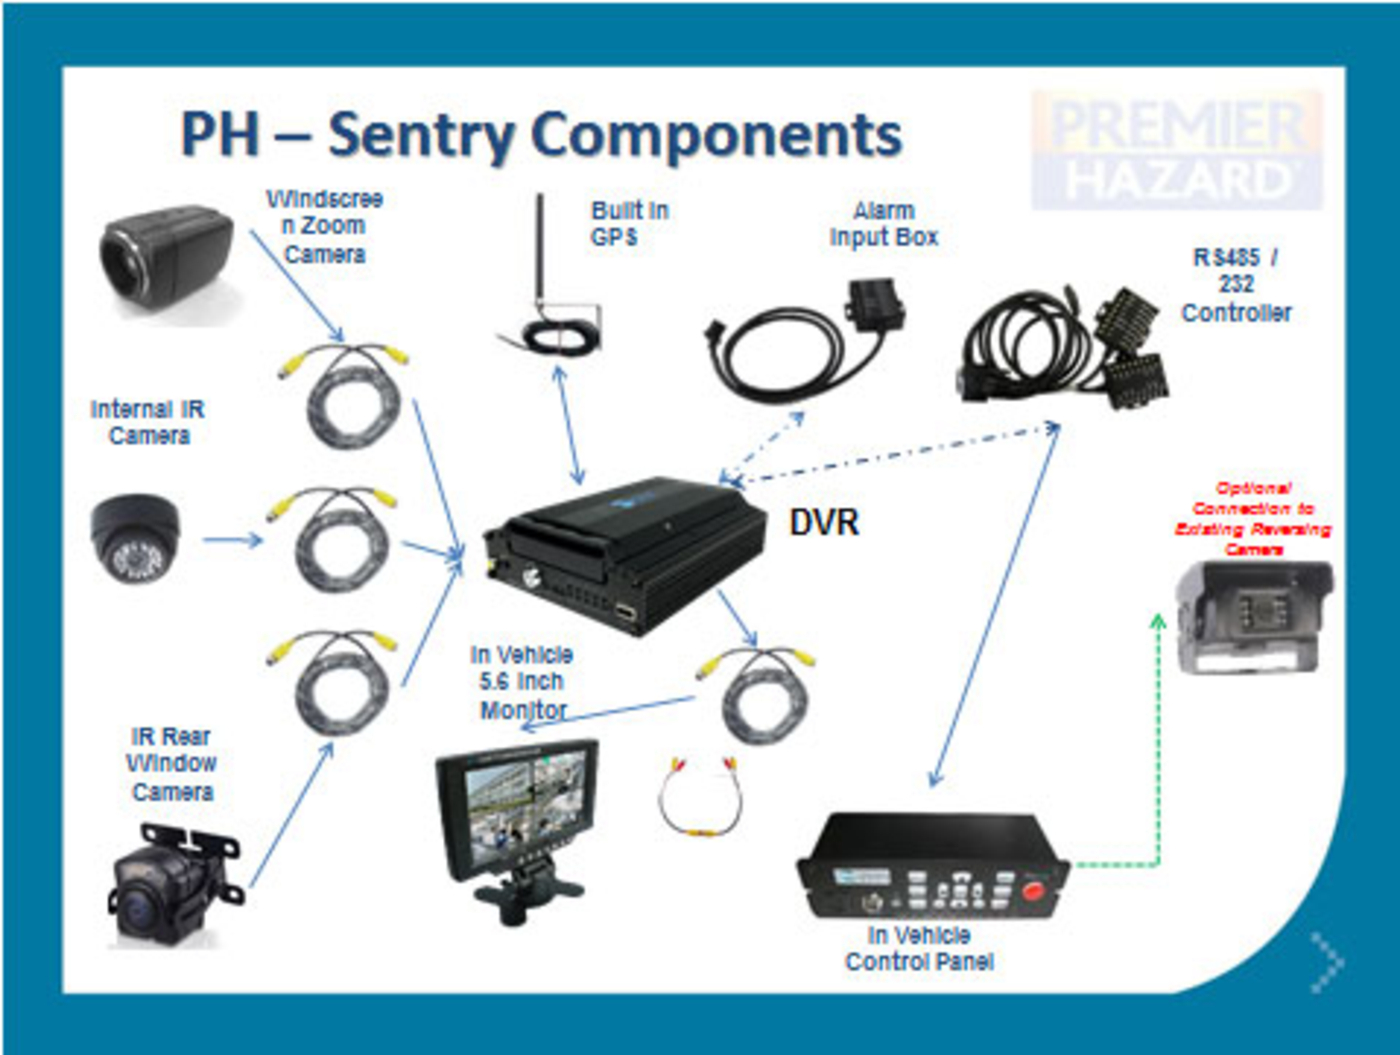 Mobile cctv camera kit premier hazard manufacture and supply ph sentry components asfbconference2016